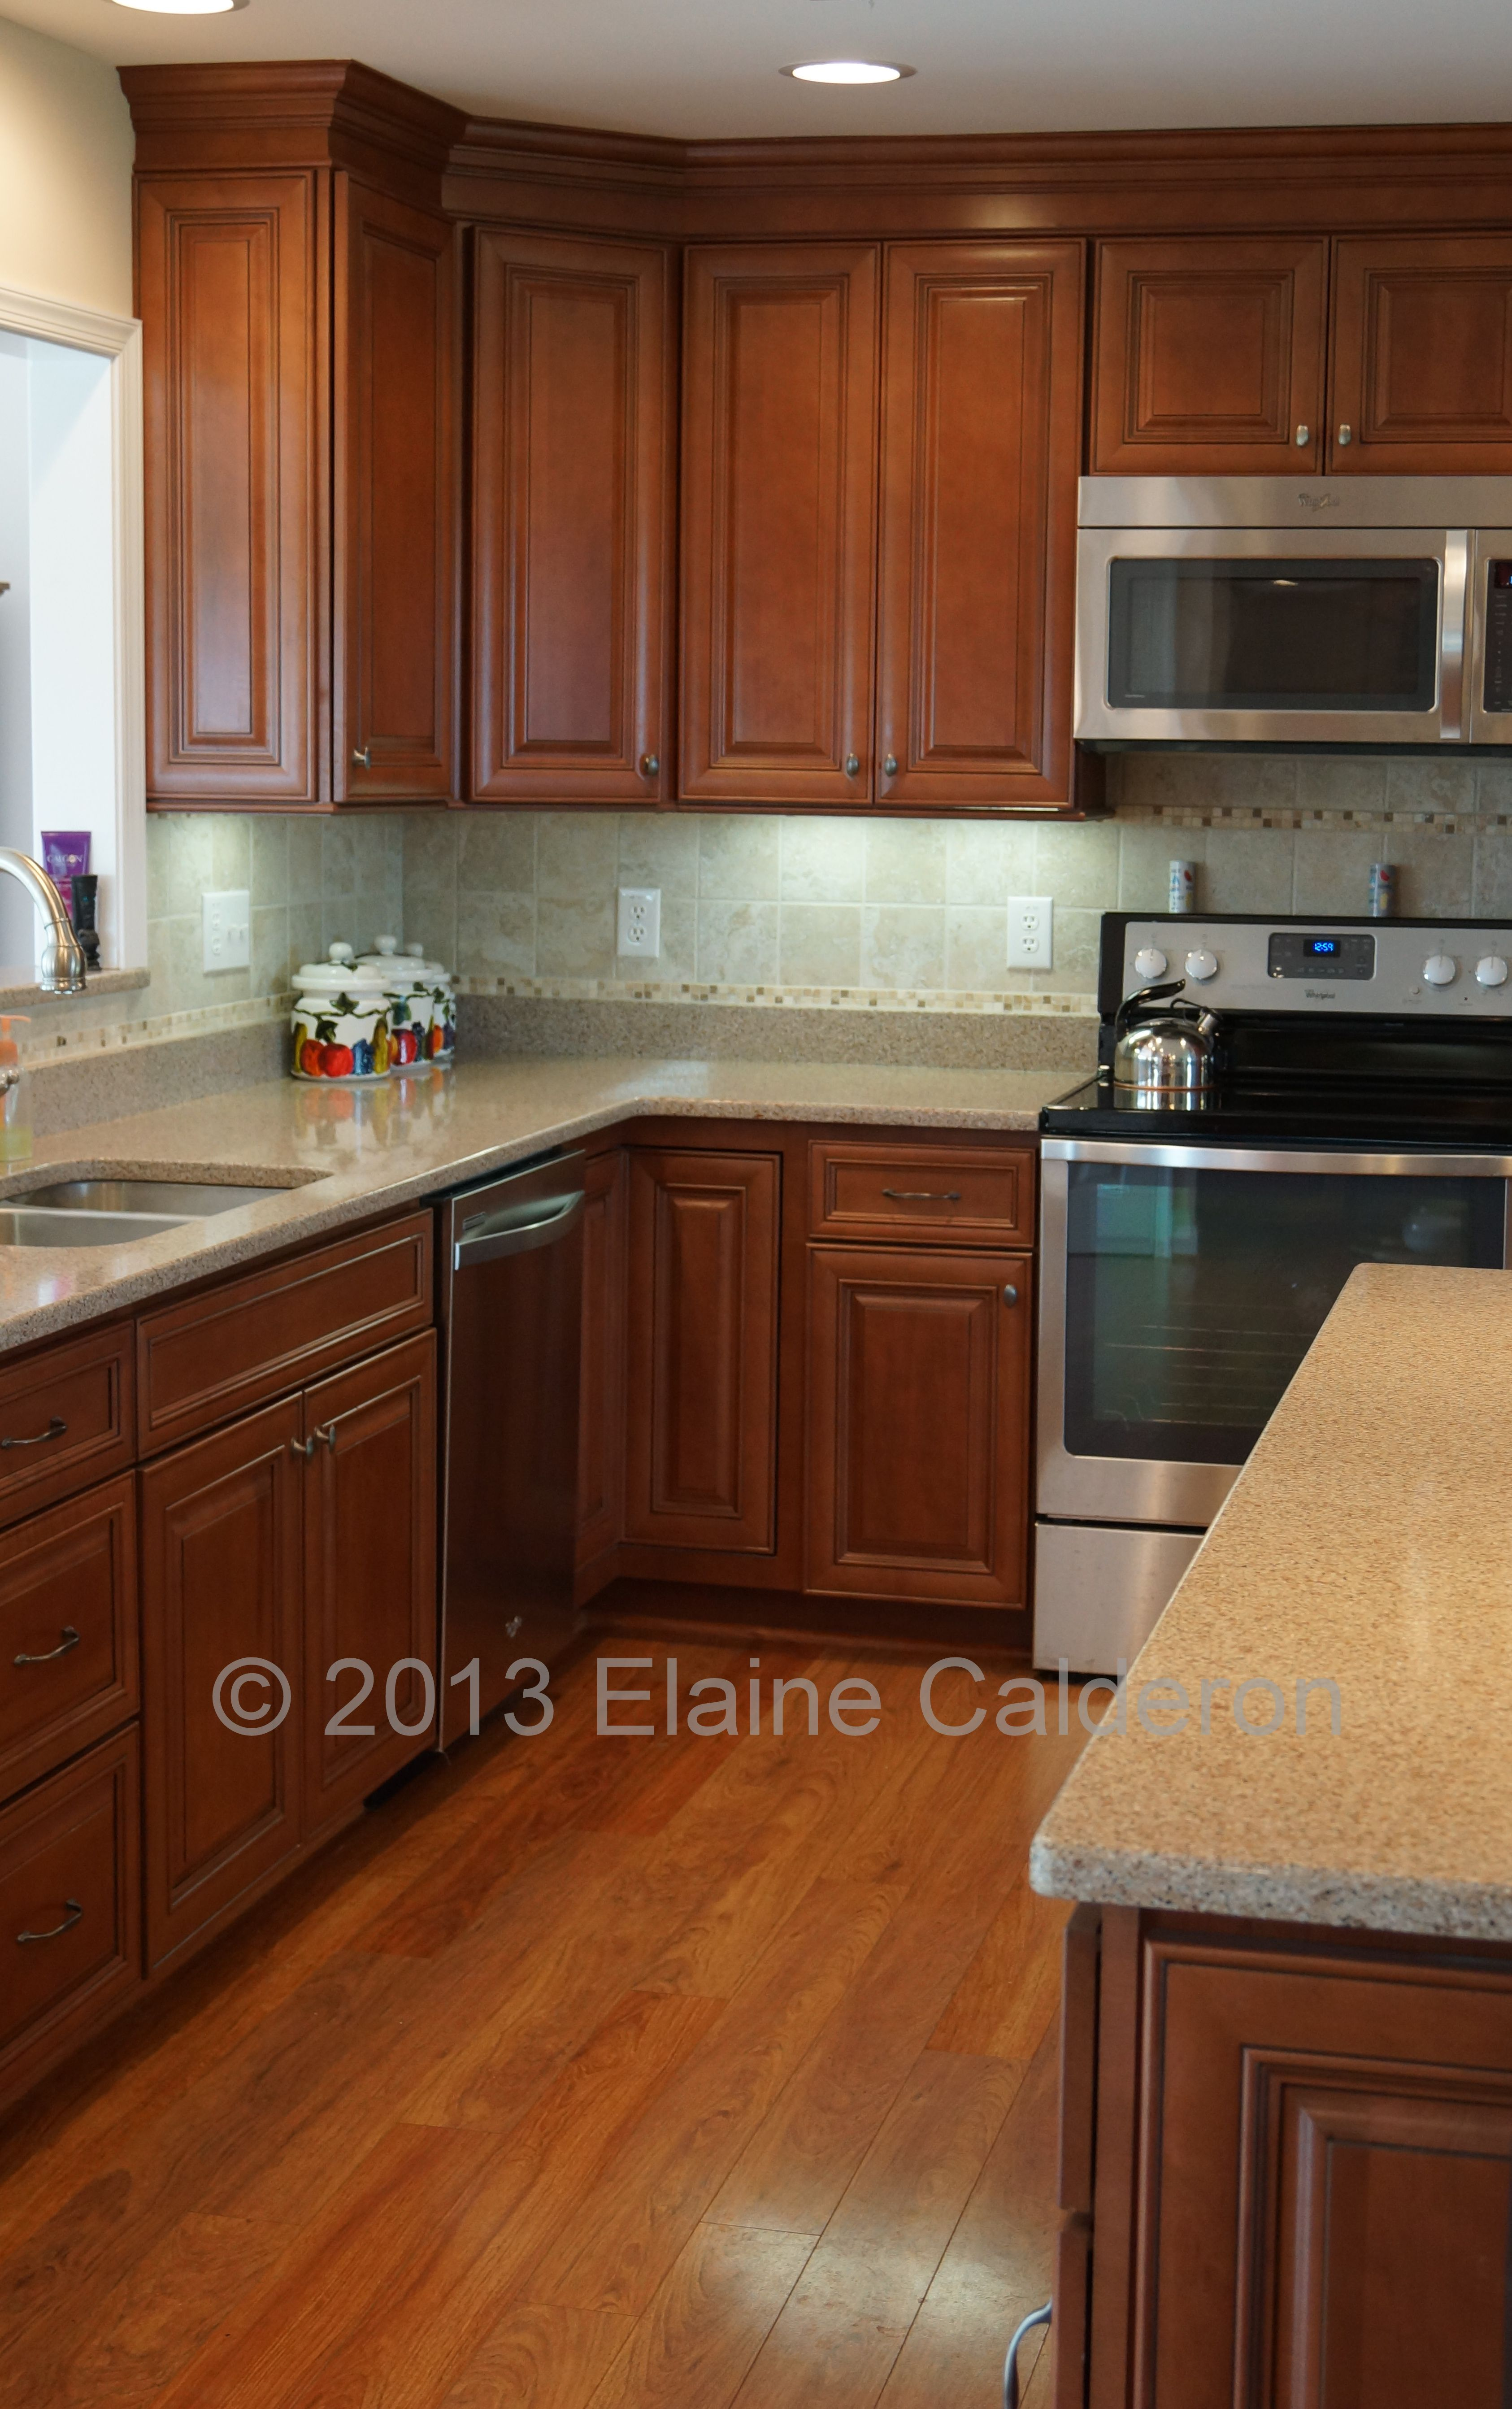 Pin By Delta Lumber On Our Cabinetry Projects Classical Kitchen Classic Kitchen Cabinets Maple Kitchen Cabinets